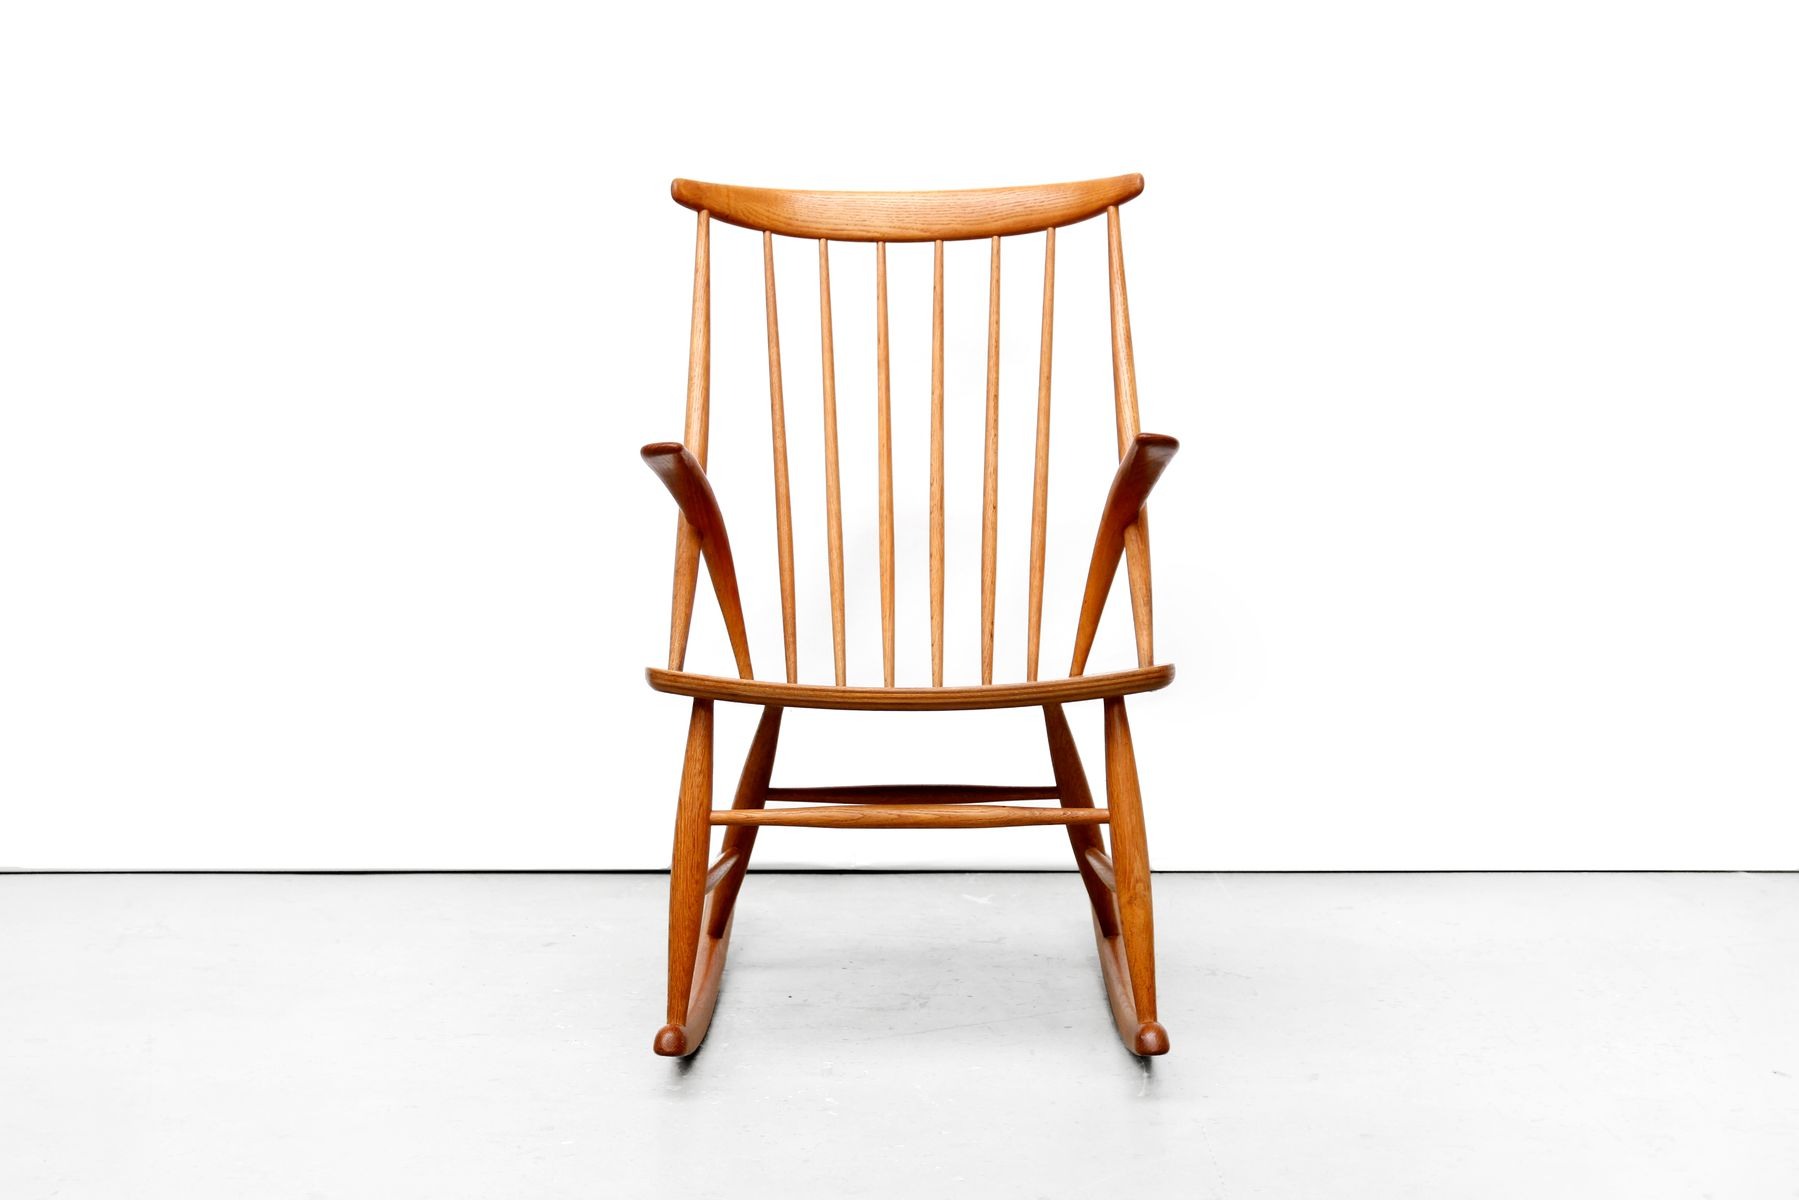 Wonderful image of Oak Rocking Chair by Illum Wikkelsø for N. Eilersen 1958 for sale at  with #3E1609 color and 1800x1200 pixels